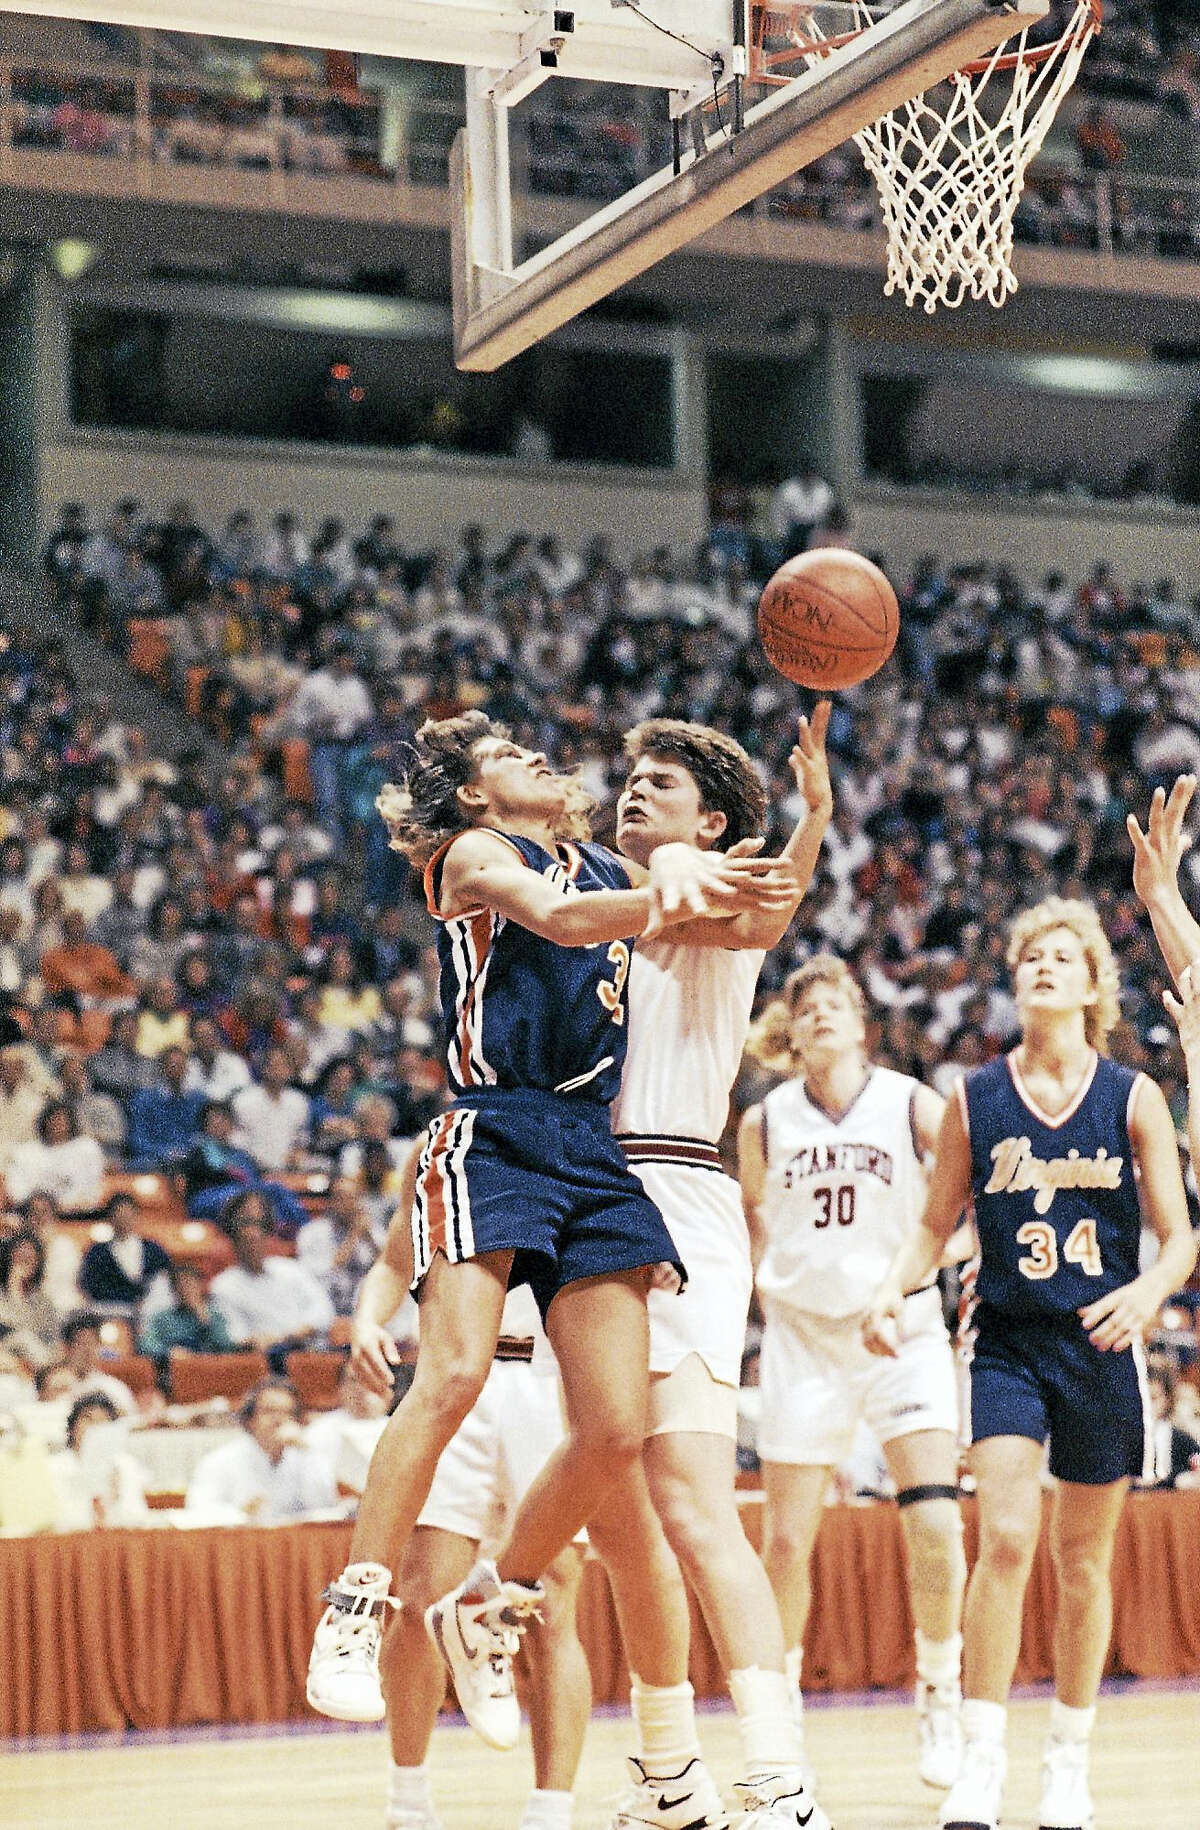 Virginia's Tammi Reiss, left, collides with a Stanford player during the 1990 national semifinal game.